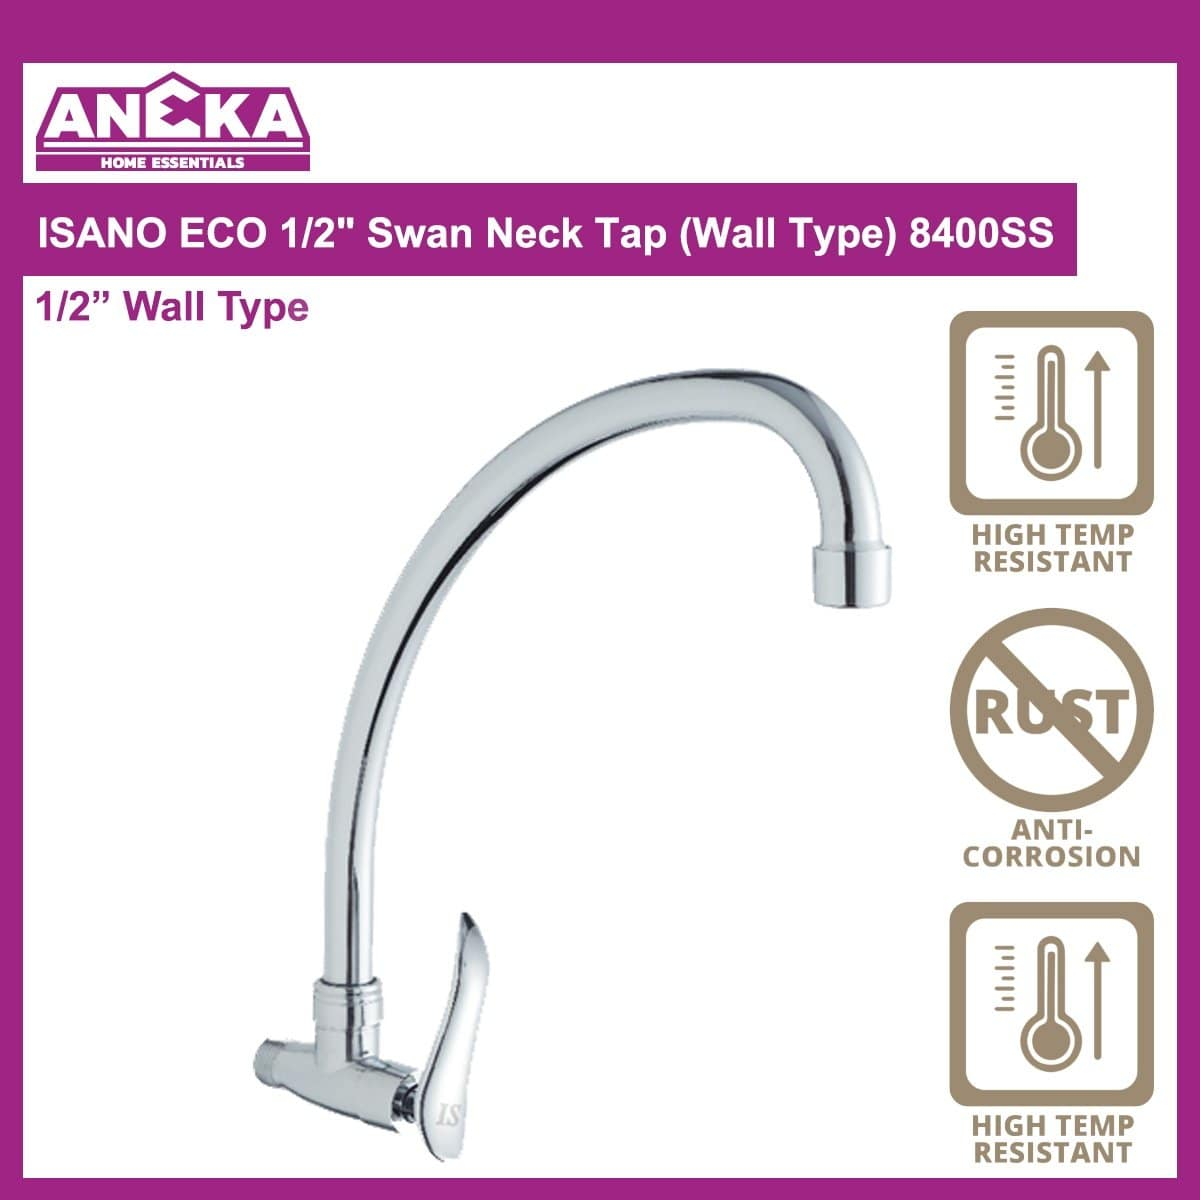 "ISANO ECO 1/2"" Swan Neck Tap (Wall Type) 8400SS"